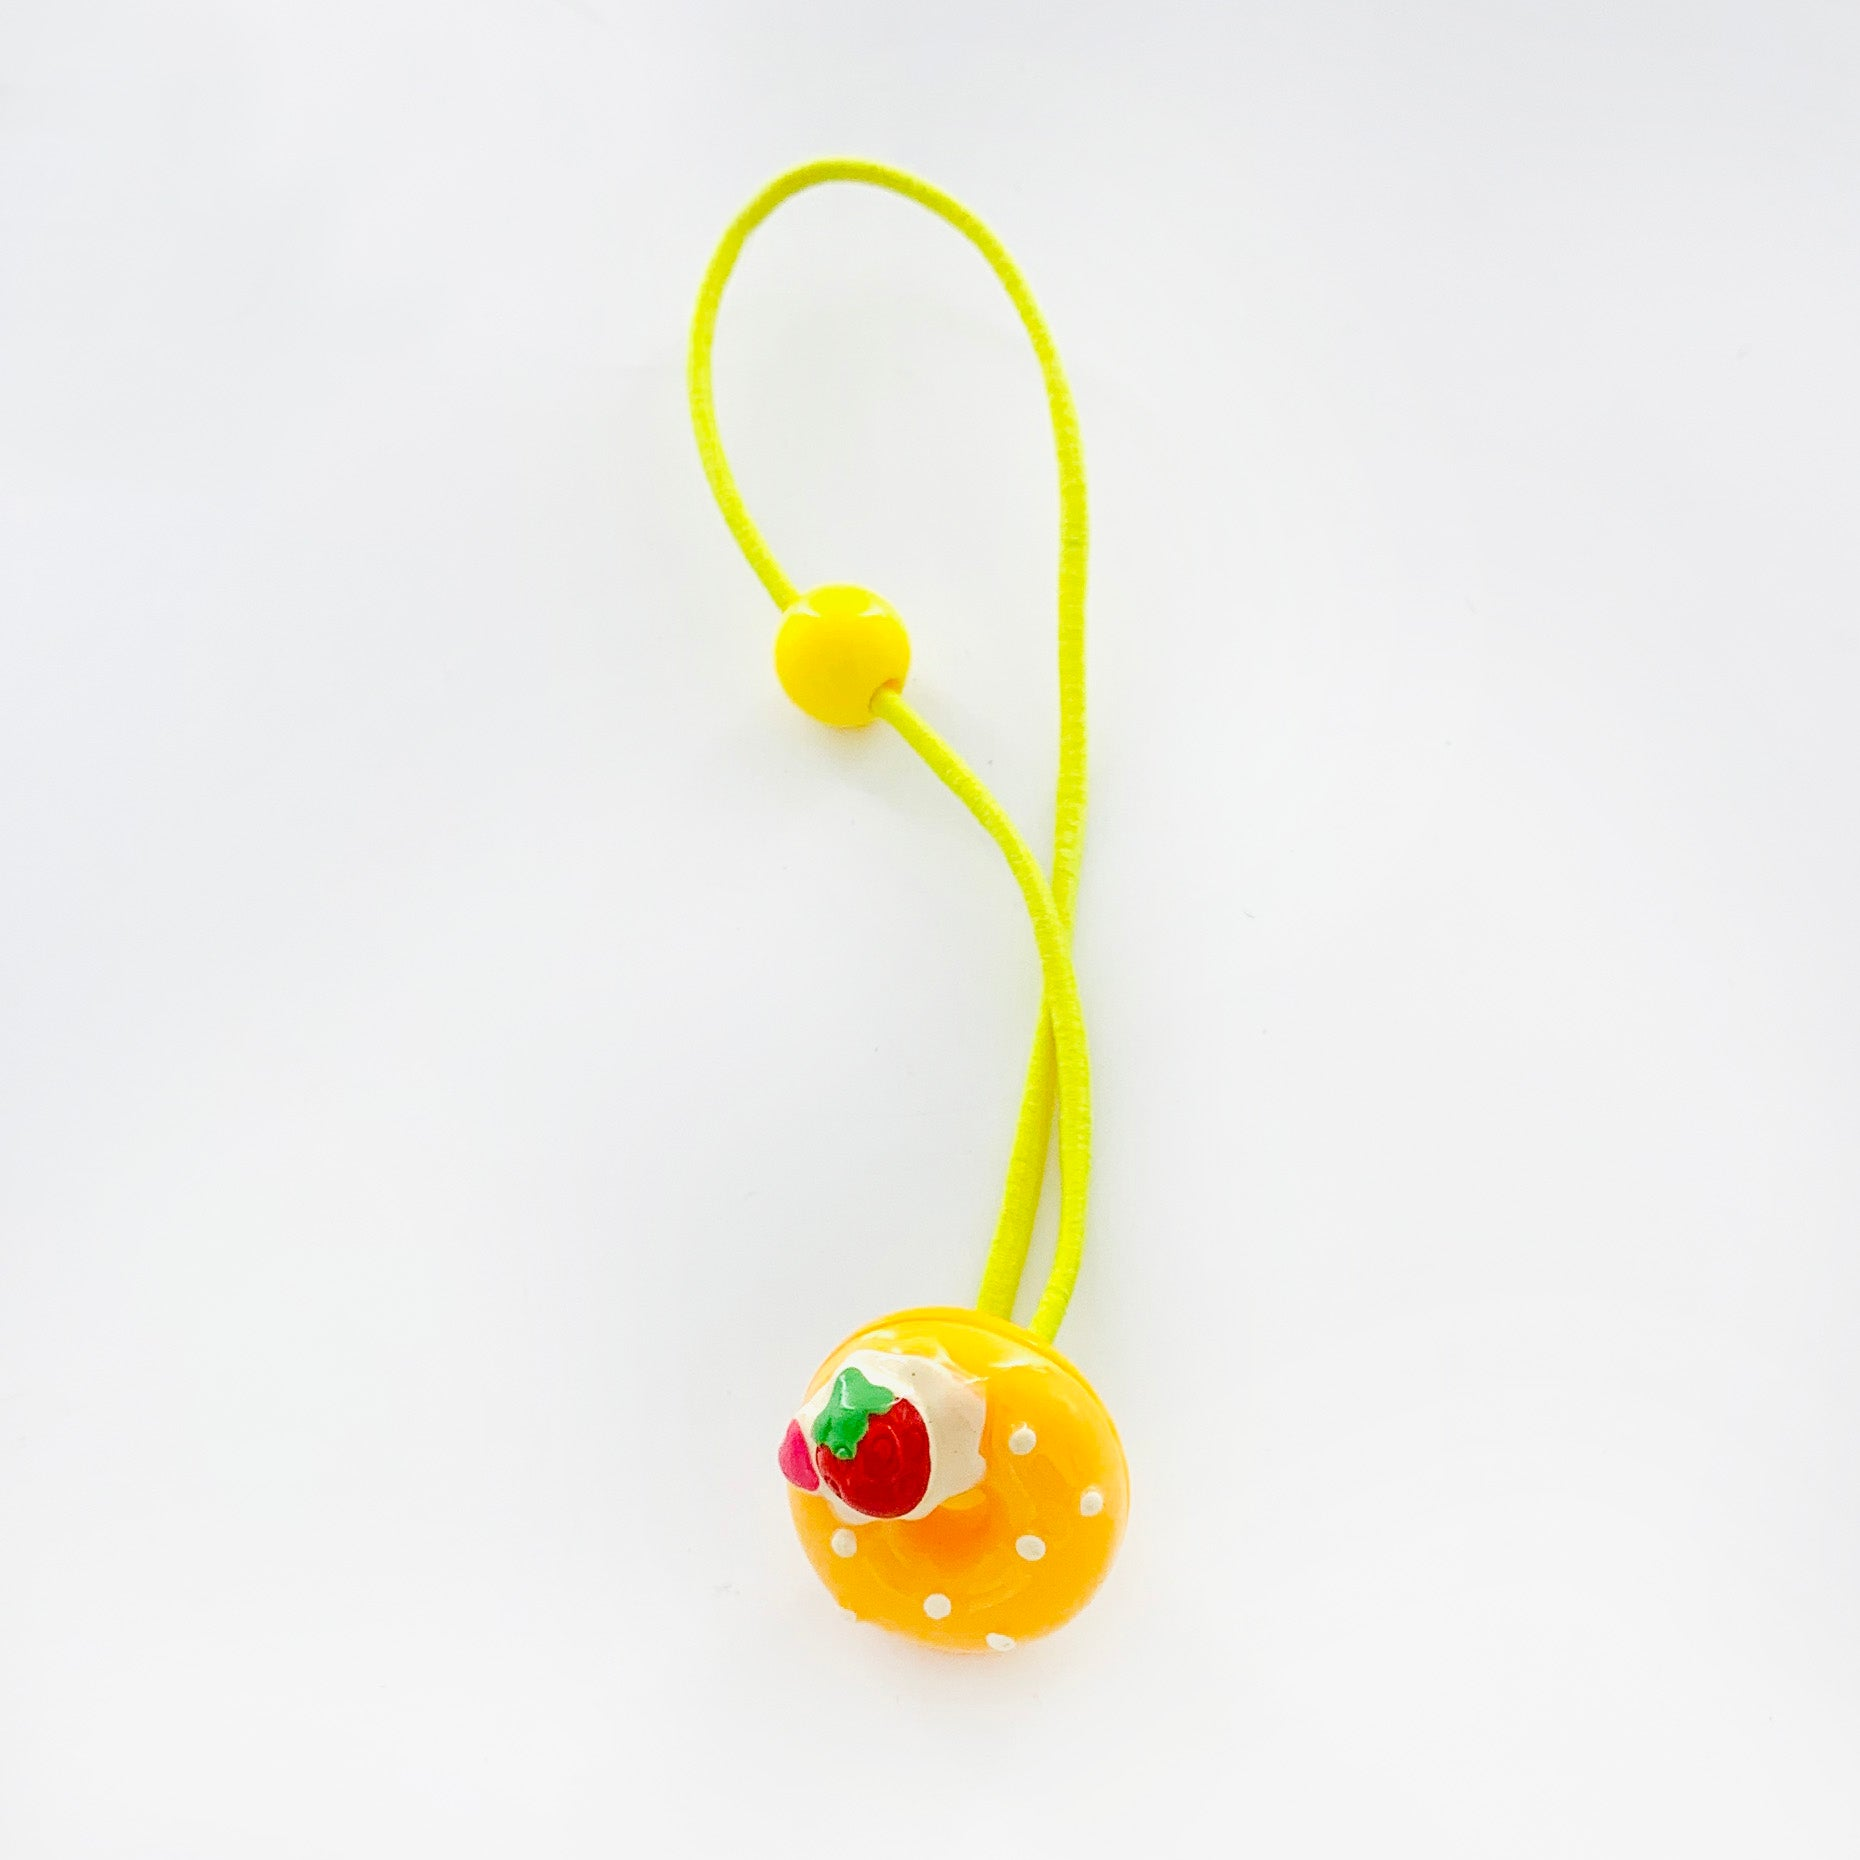 Yellow rubber band with donut